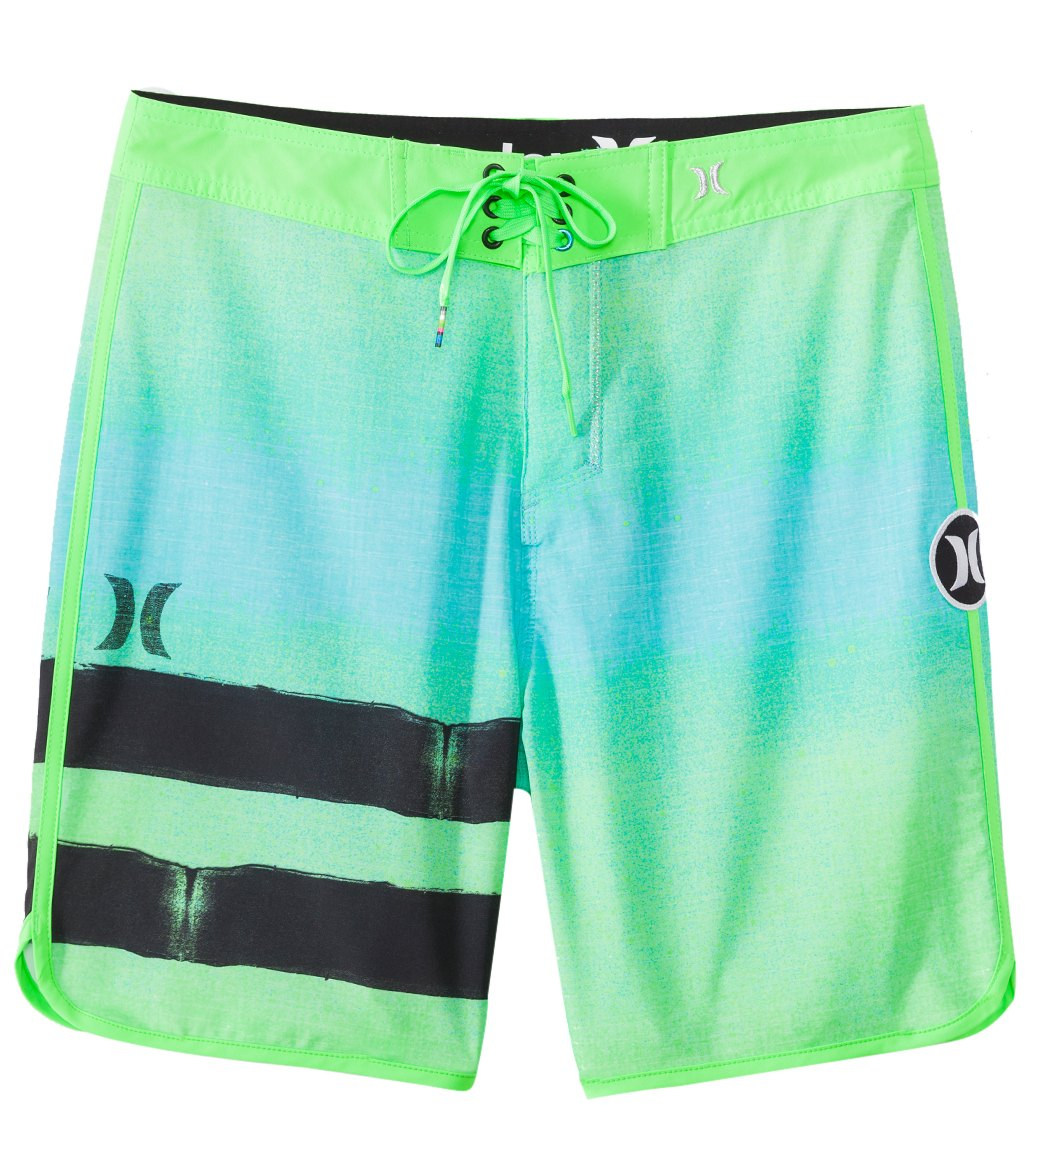 Hurley Men's Phantom Block Party Ink Boardshort at SwimOutlet.com - Free  Shipping